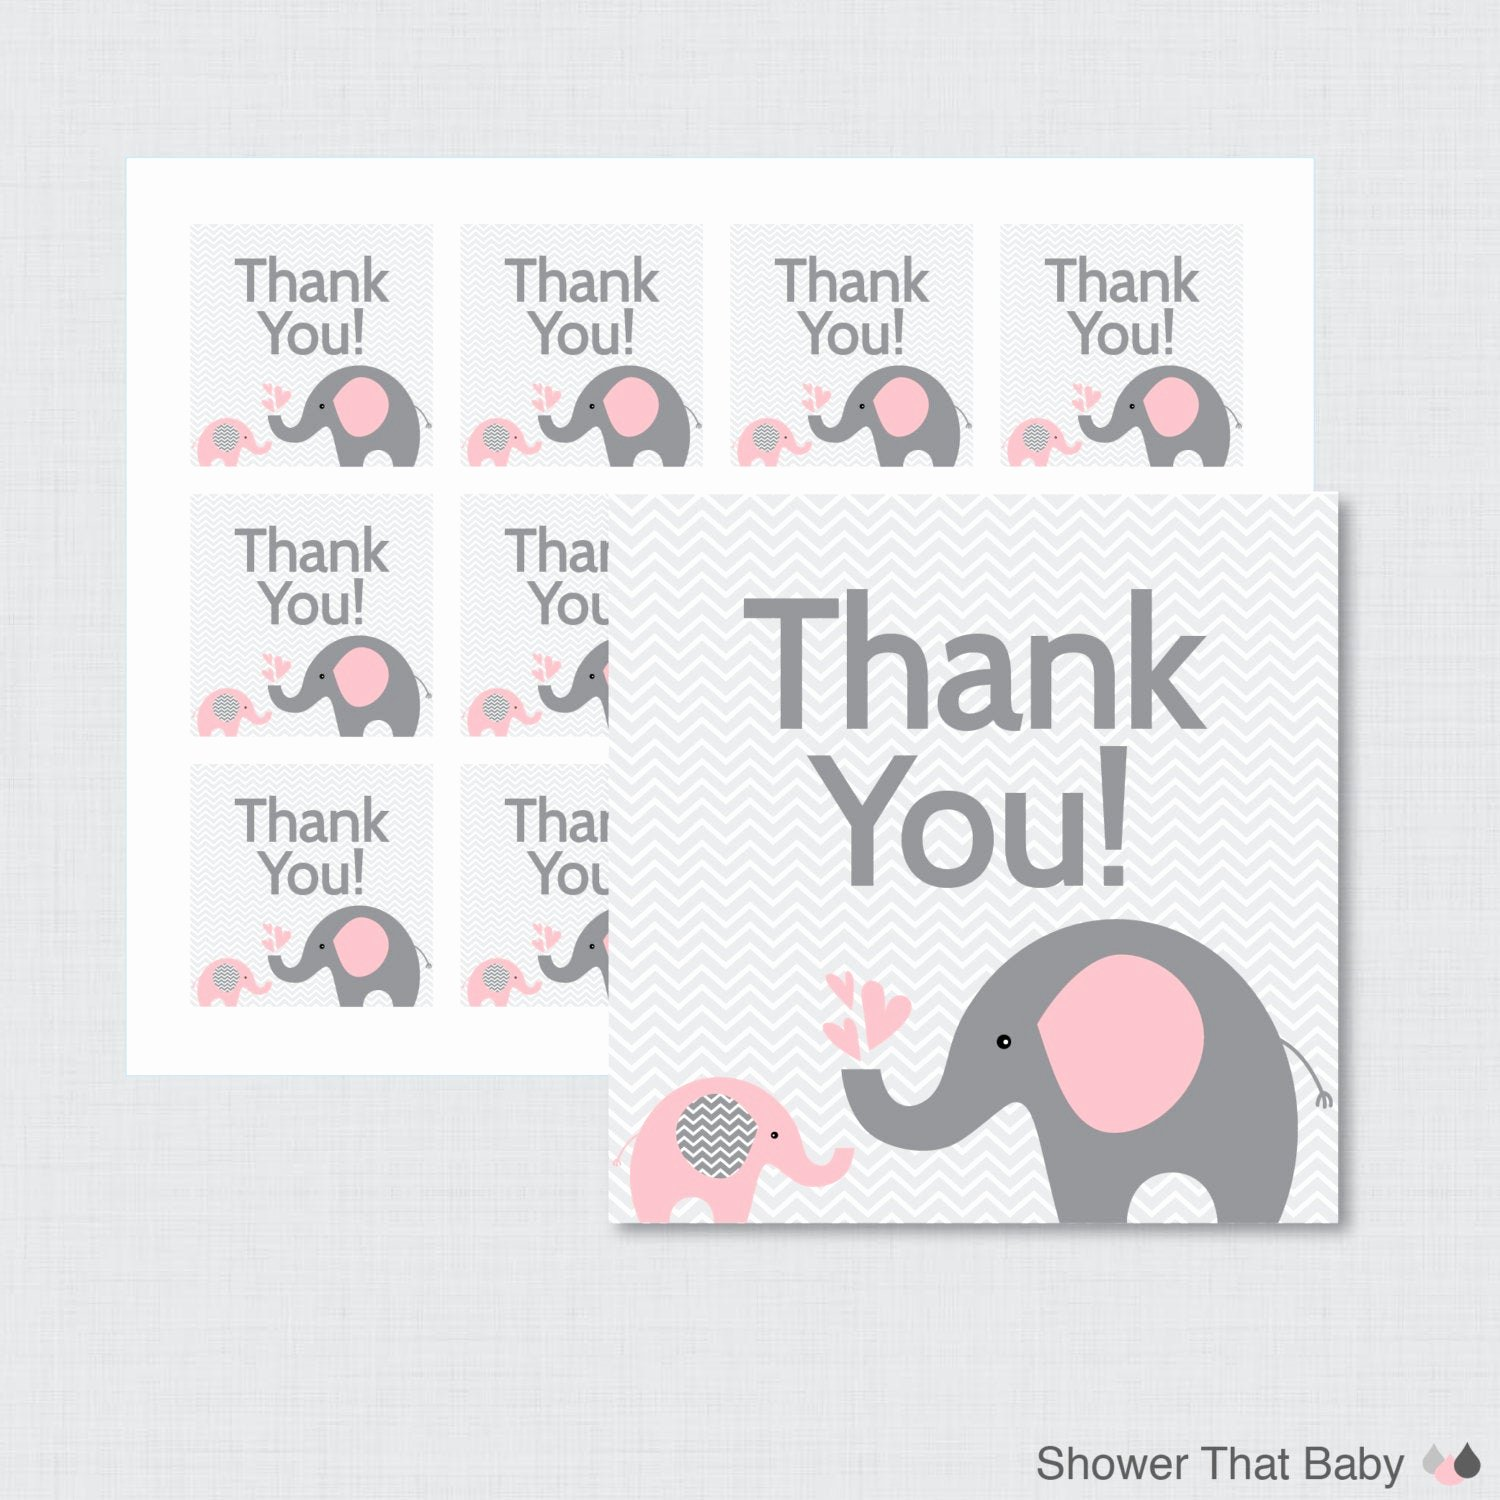 Printable Baby Shower Favor Tags Inspirational Printable Elephant Baby Shower Favor Tags Thank You Tag